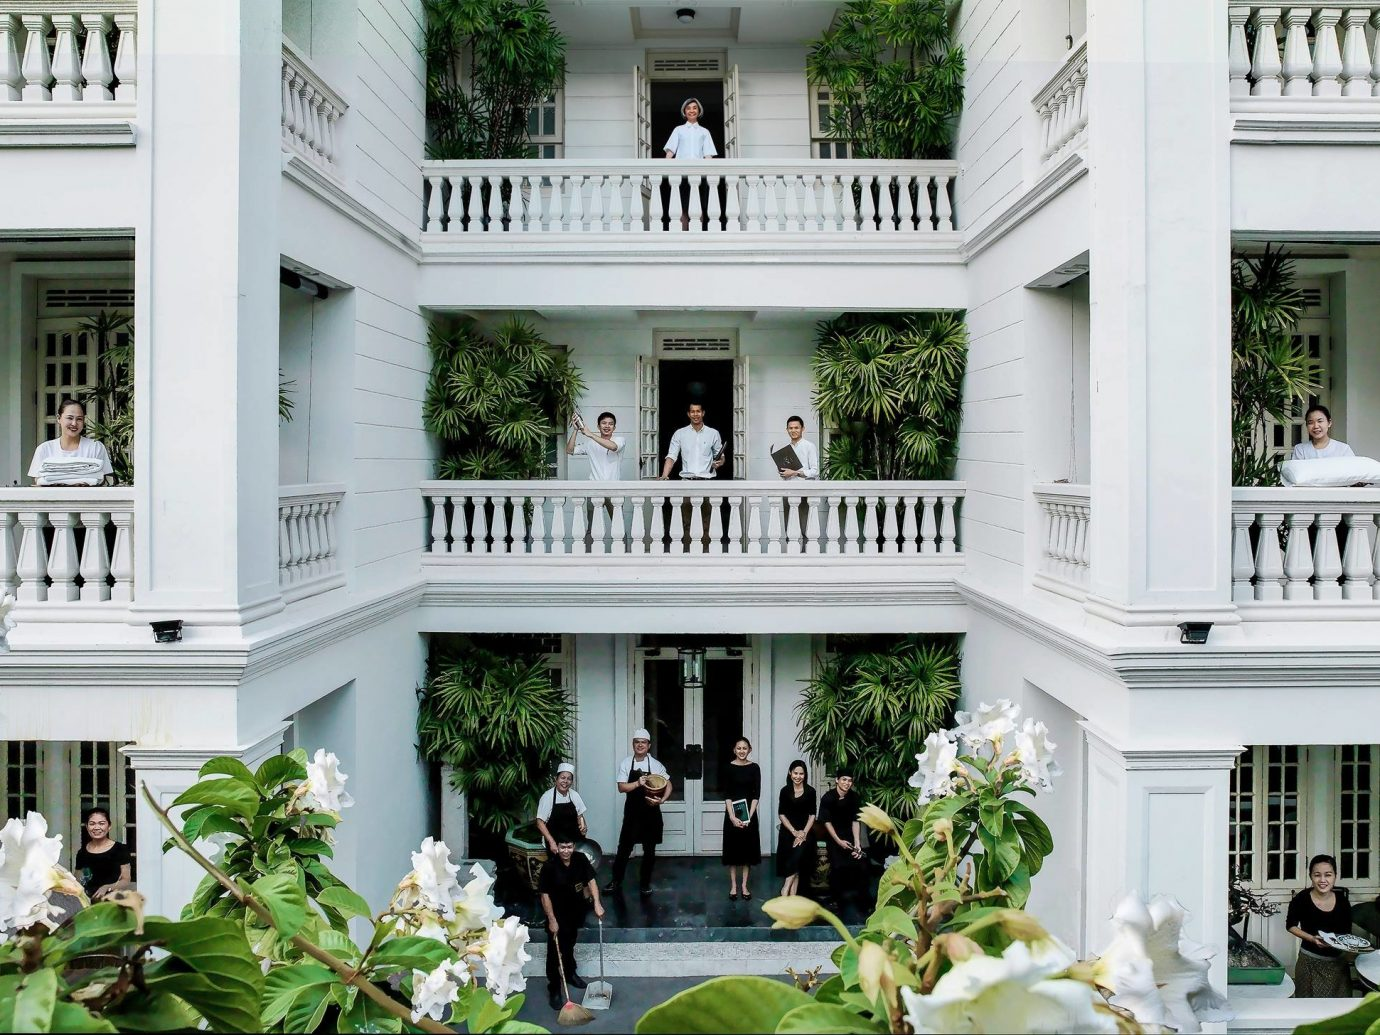 Budget building flower outdoor house mansion estate white home plant Architecture porch Courtyard Balcony Villa Garden Resort facade condominium palace outdoor structure backyard decorated furniture